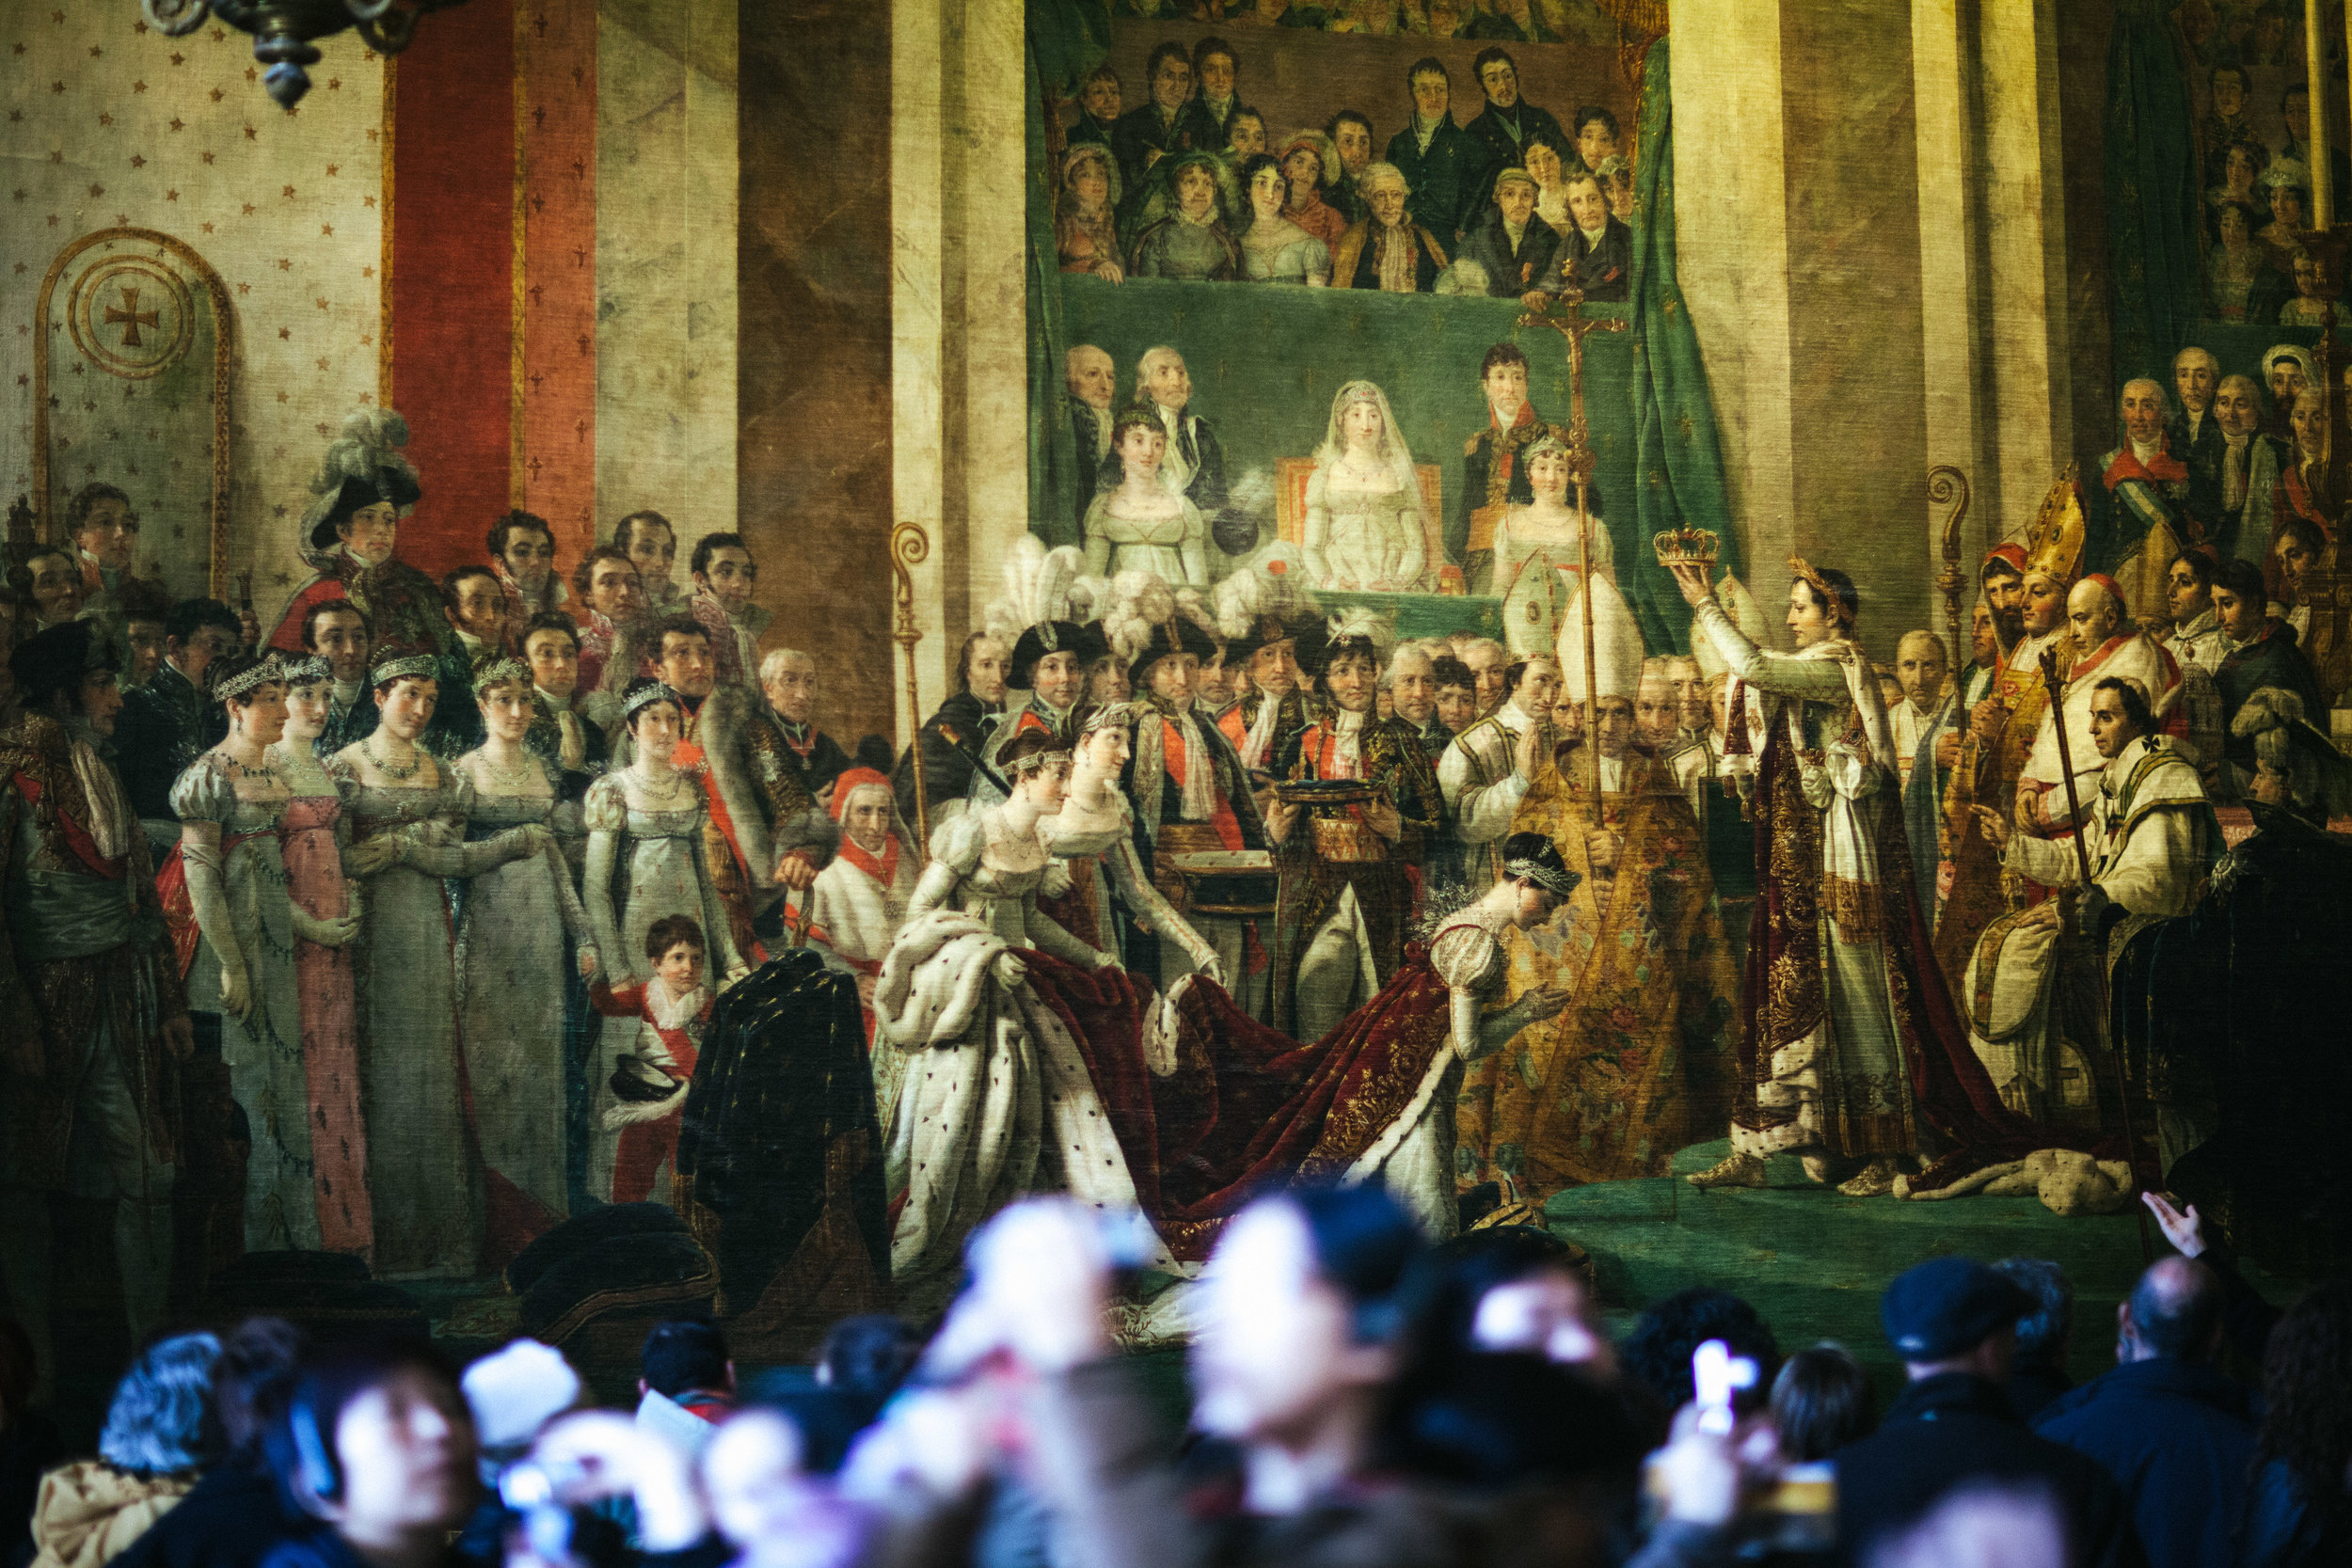 The Coronation of Napoleon is painted by Jacques-Louis David - Napoleon's official painter. This 10 x 6 metre tall painting seen in the Palace of Versailles is actually a replica. The actual painting is exhibited in the Louvre.